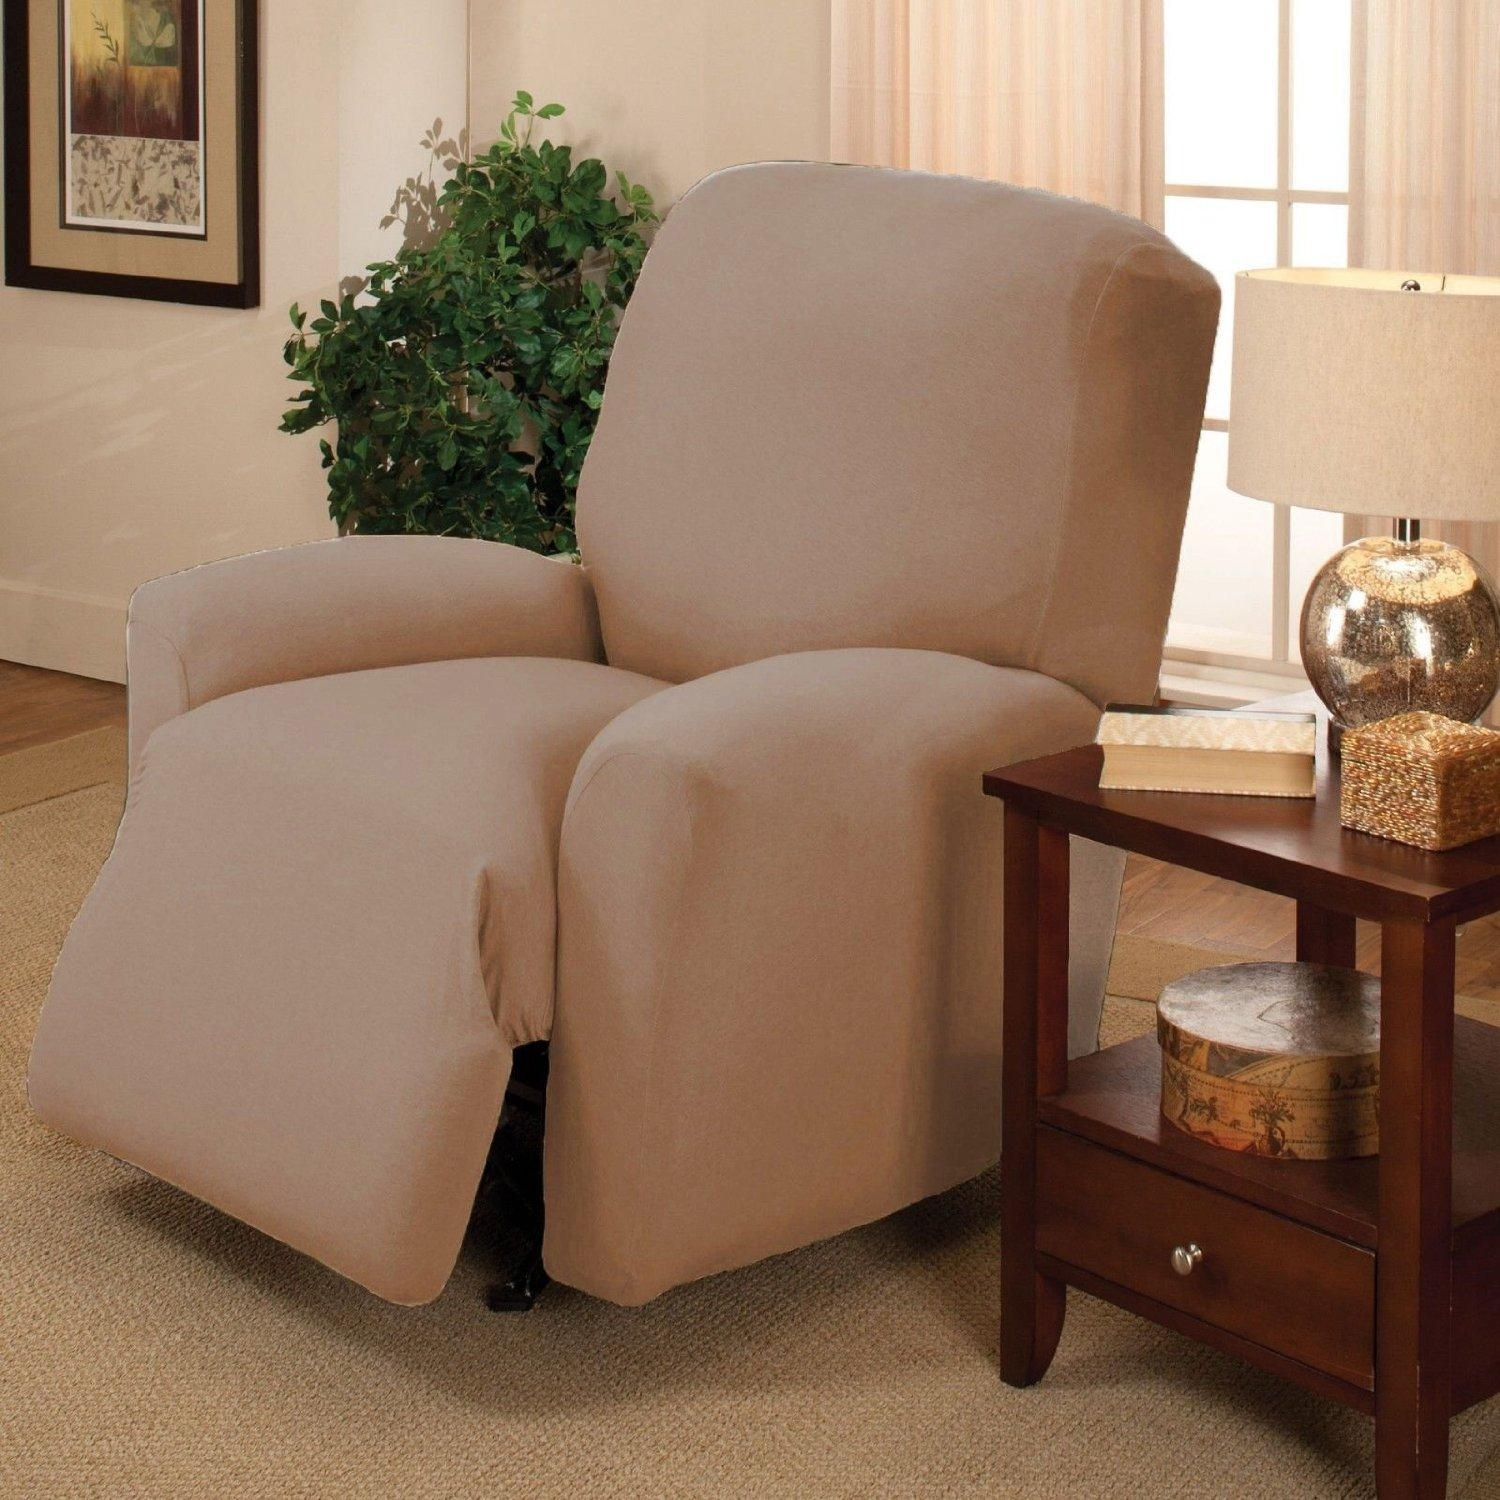 Sofas Center : 3A5672D937Ad 1 Recliner Sofa Slipcovers Walmart With Recliner Sofa Slipcovers (Image 12 of 20)